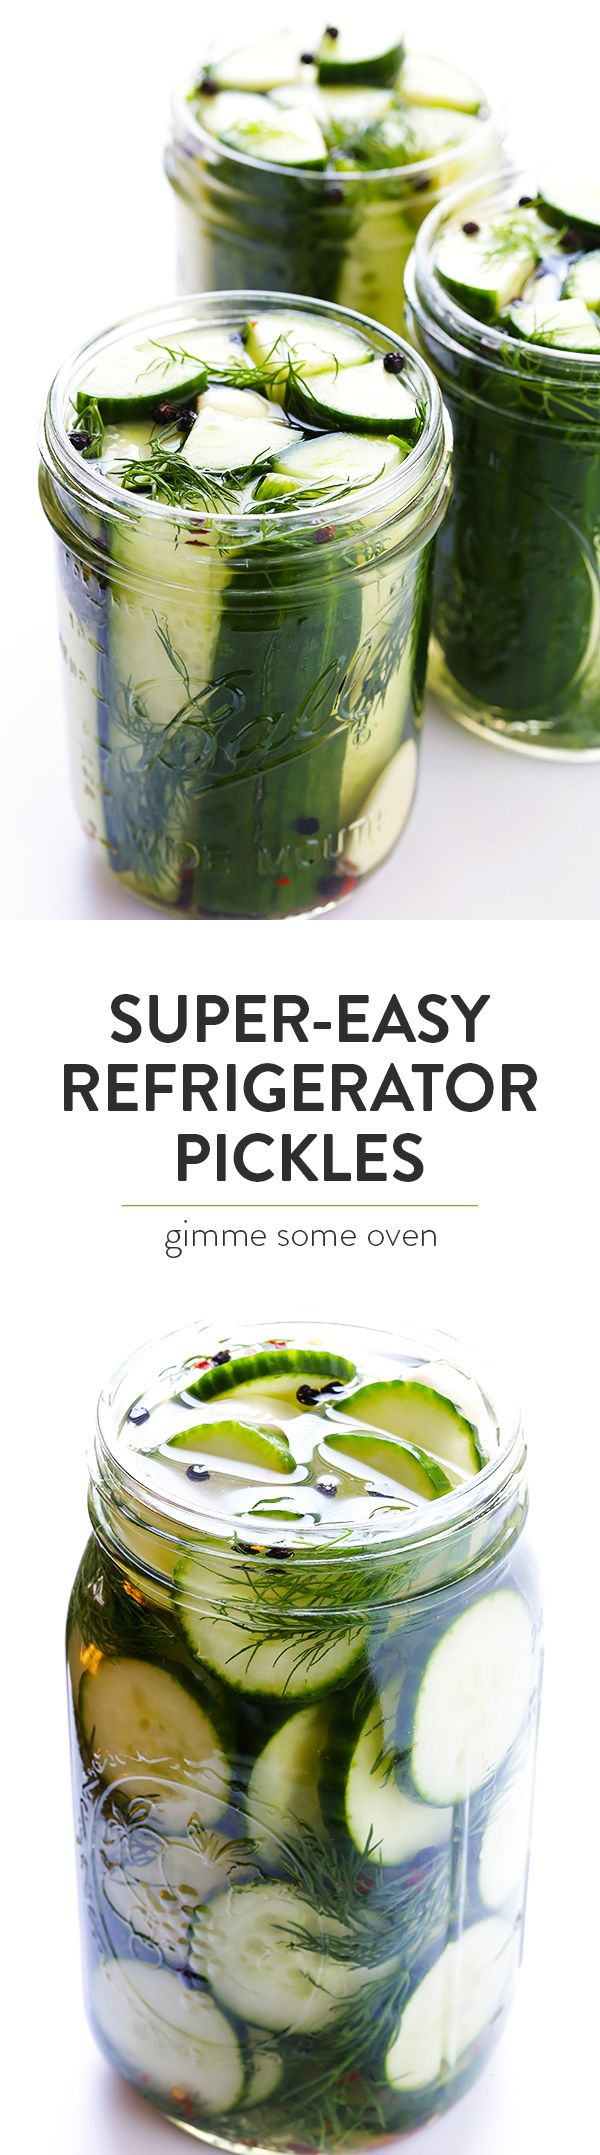 This Easy Refrigerator Pickles recipe only takes about 5 minutes to prep, and makes perfectly crisp and delicious pickles that you'll LOVE! | gimmesomeoven.com (Vegan / Gluten-Free)